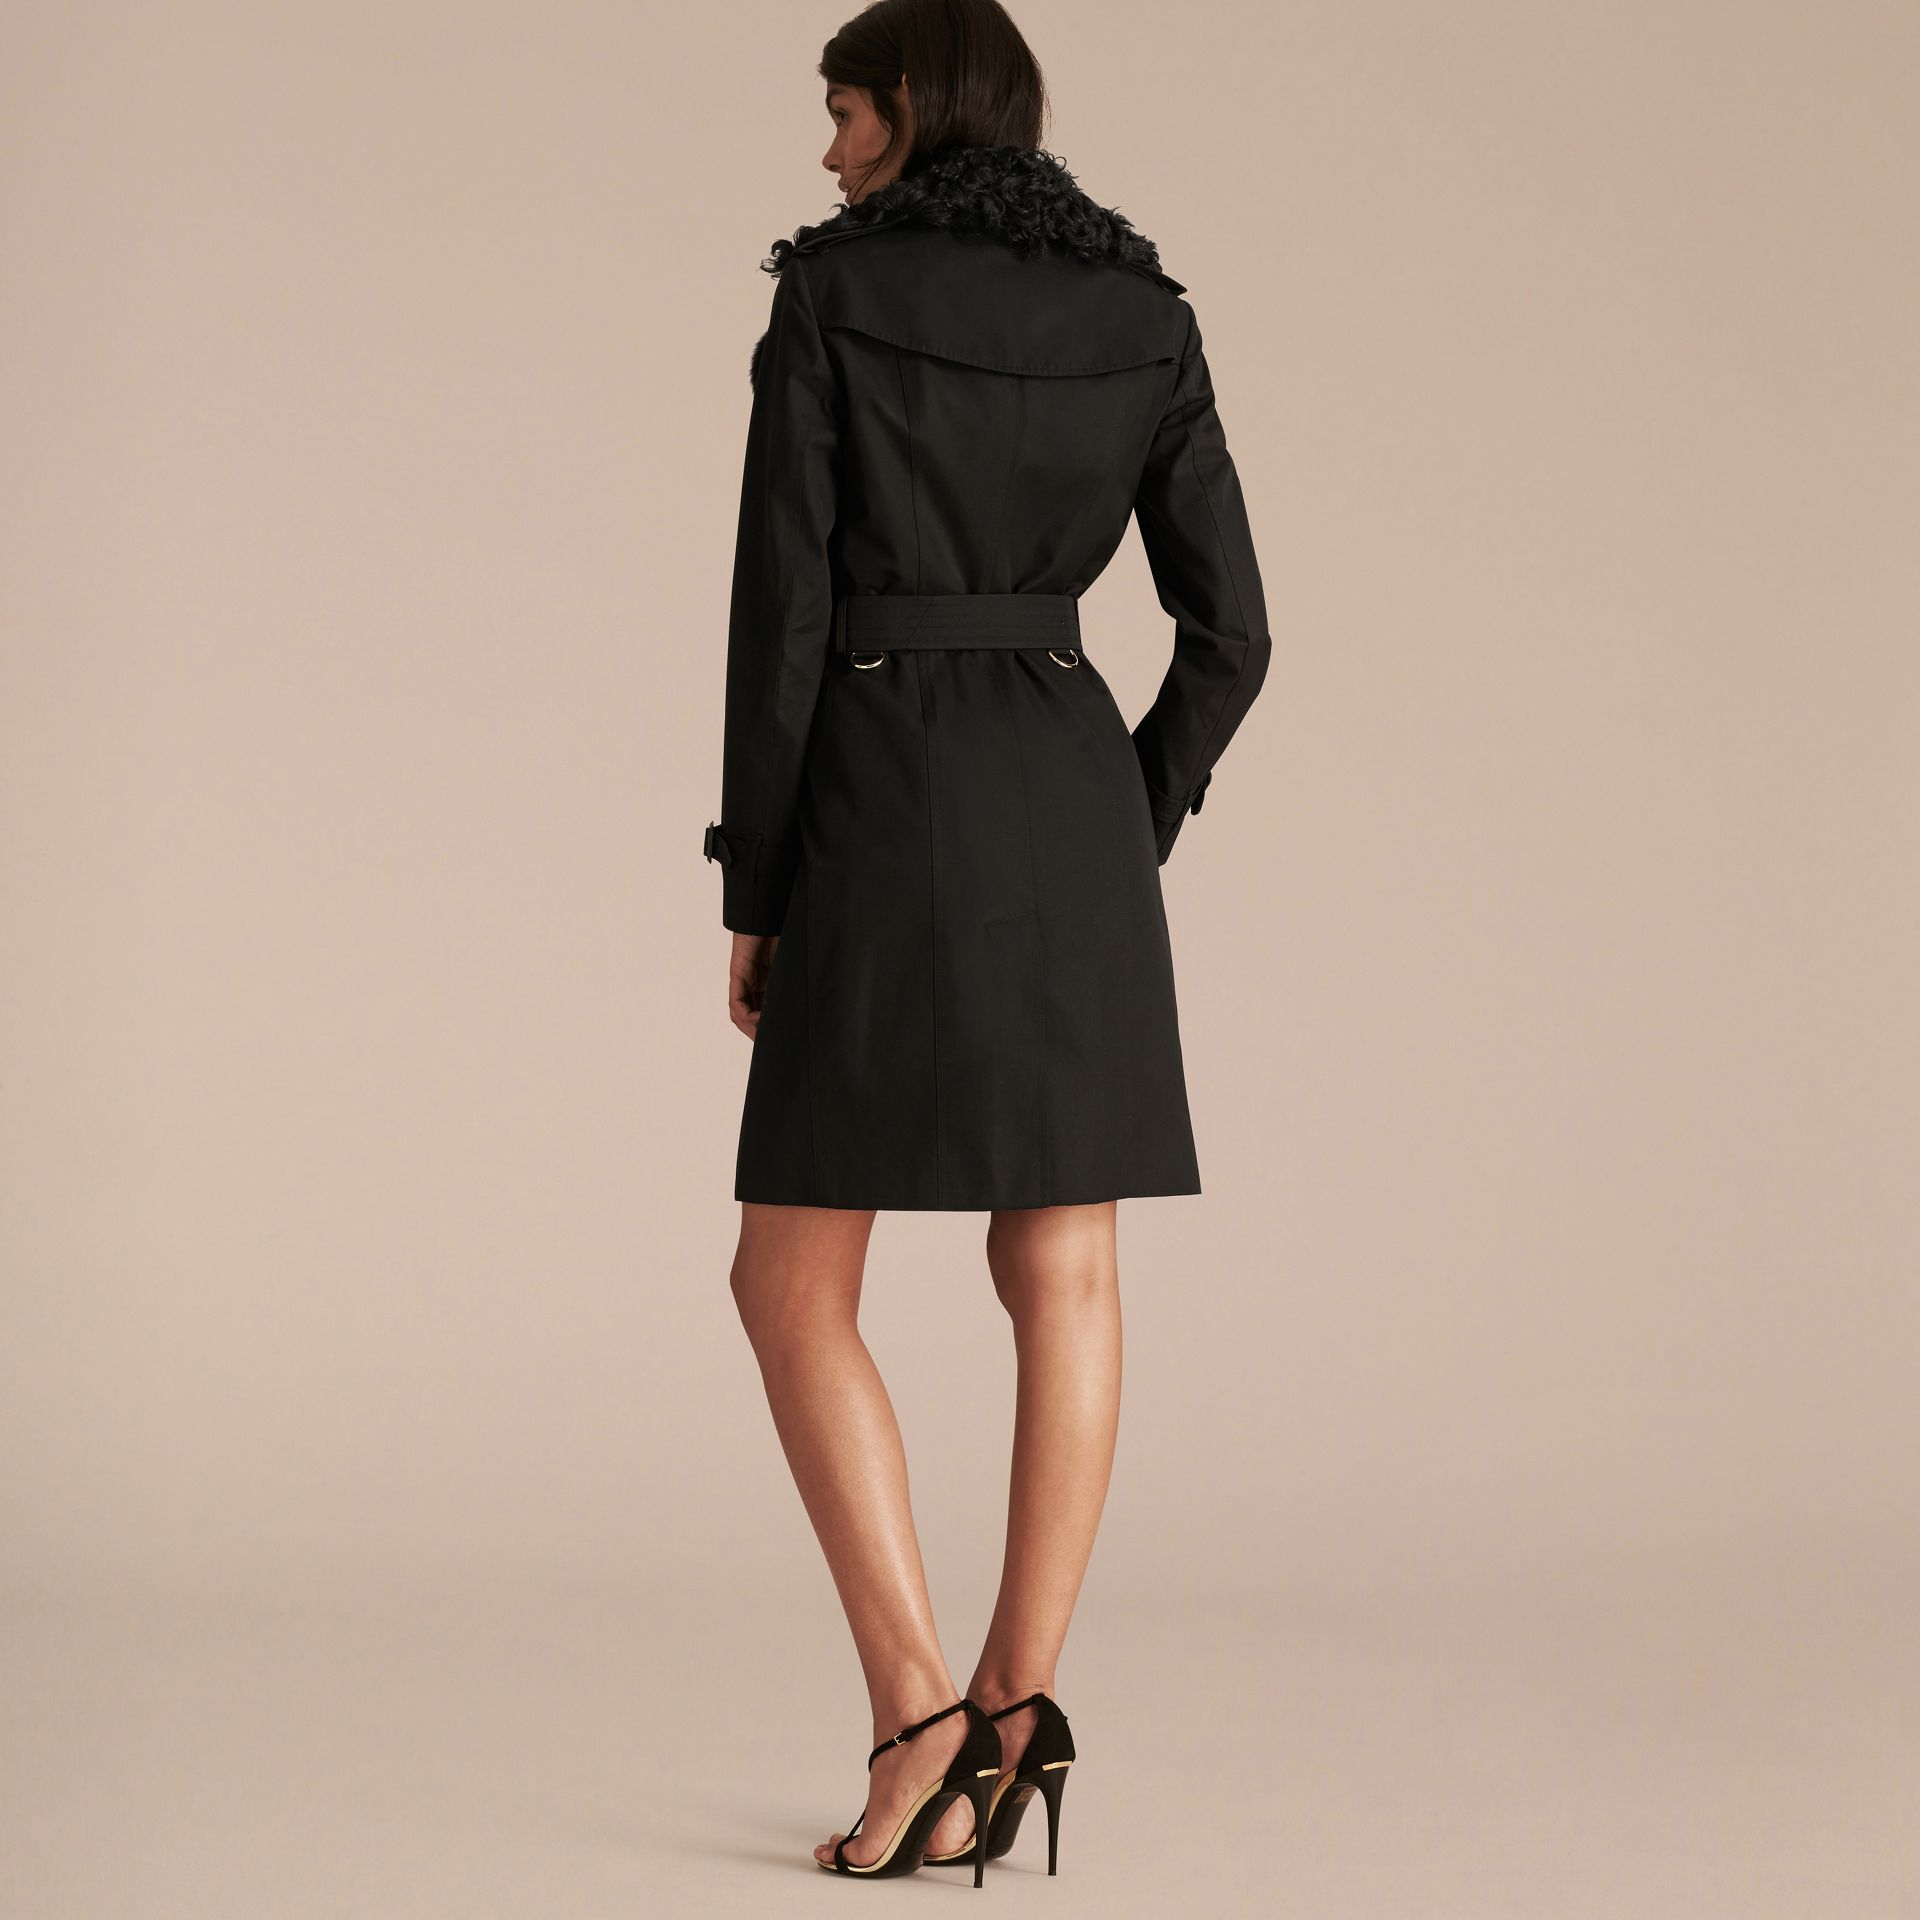 Black Cotton Gabardine Trench Coat with Detachable Fur Trim - gallery image 3